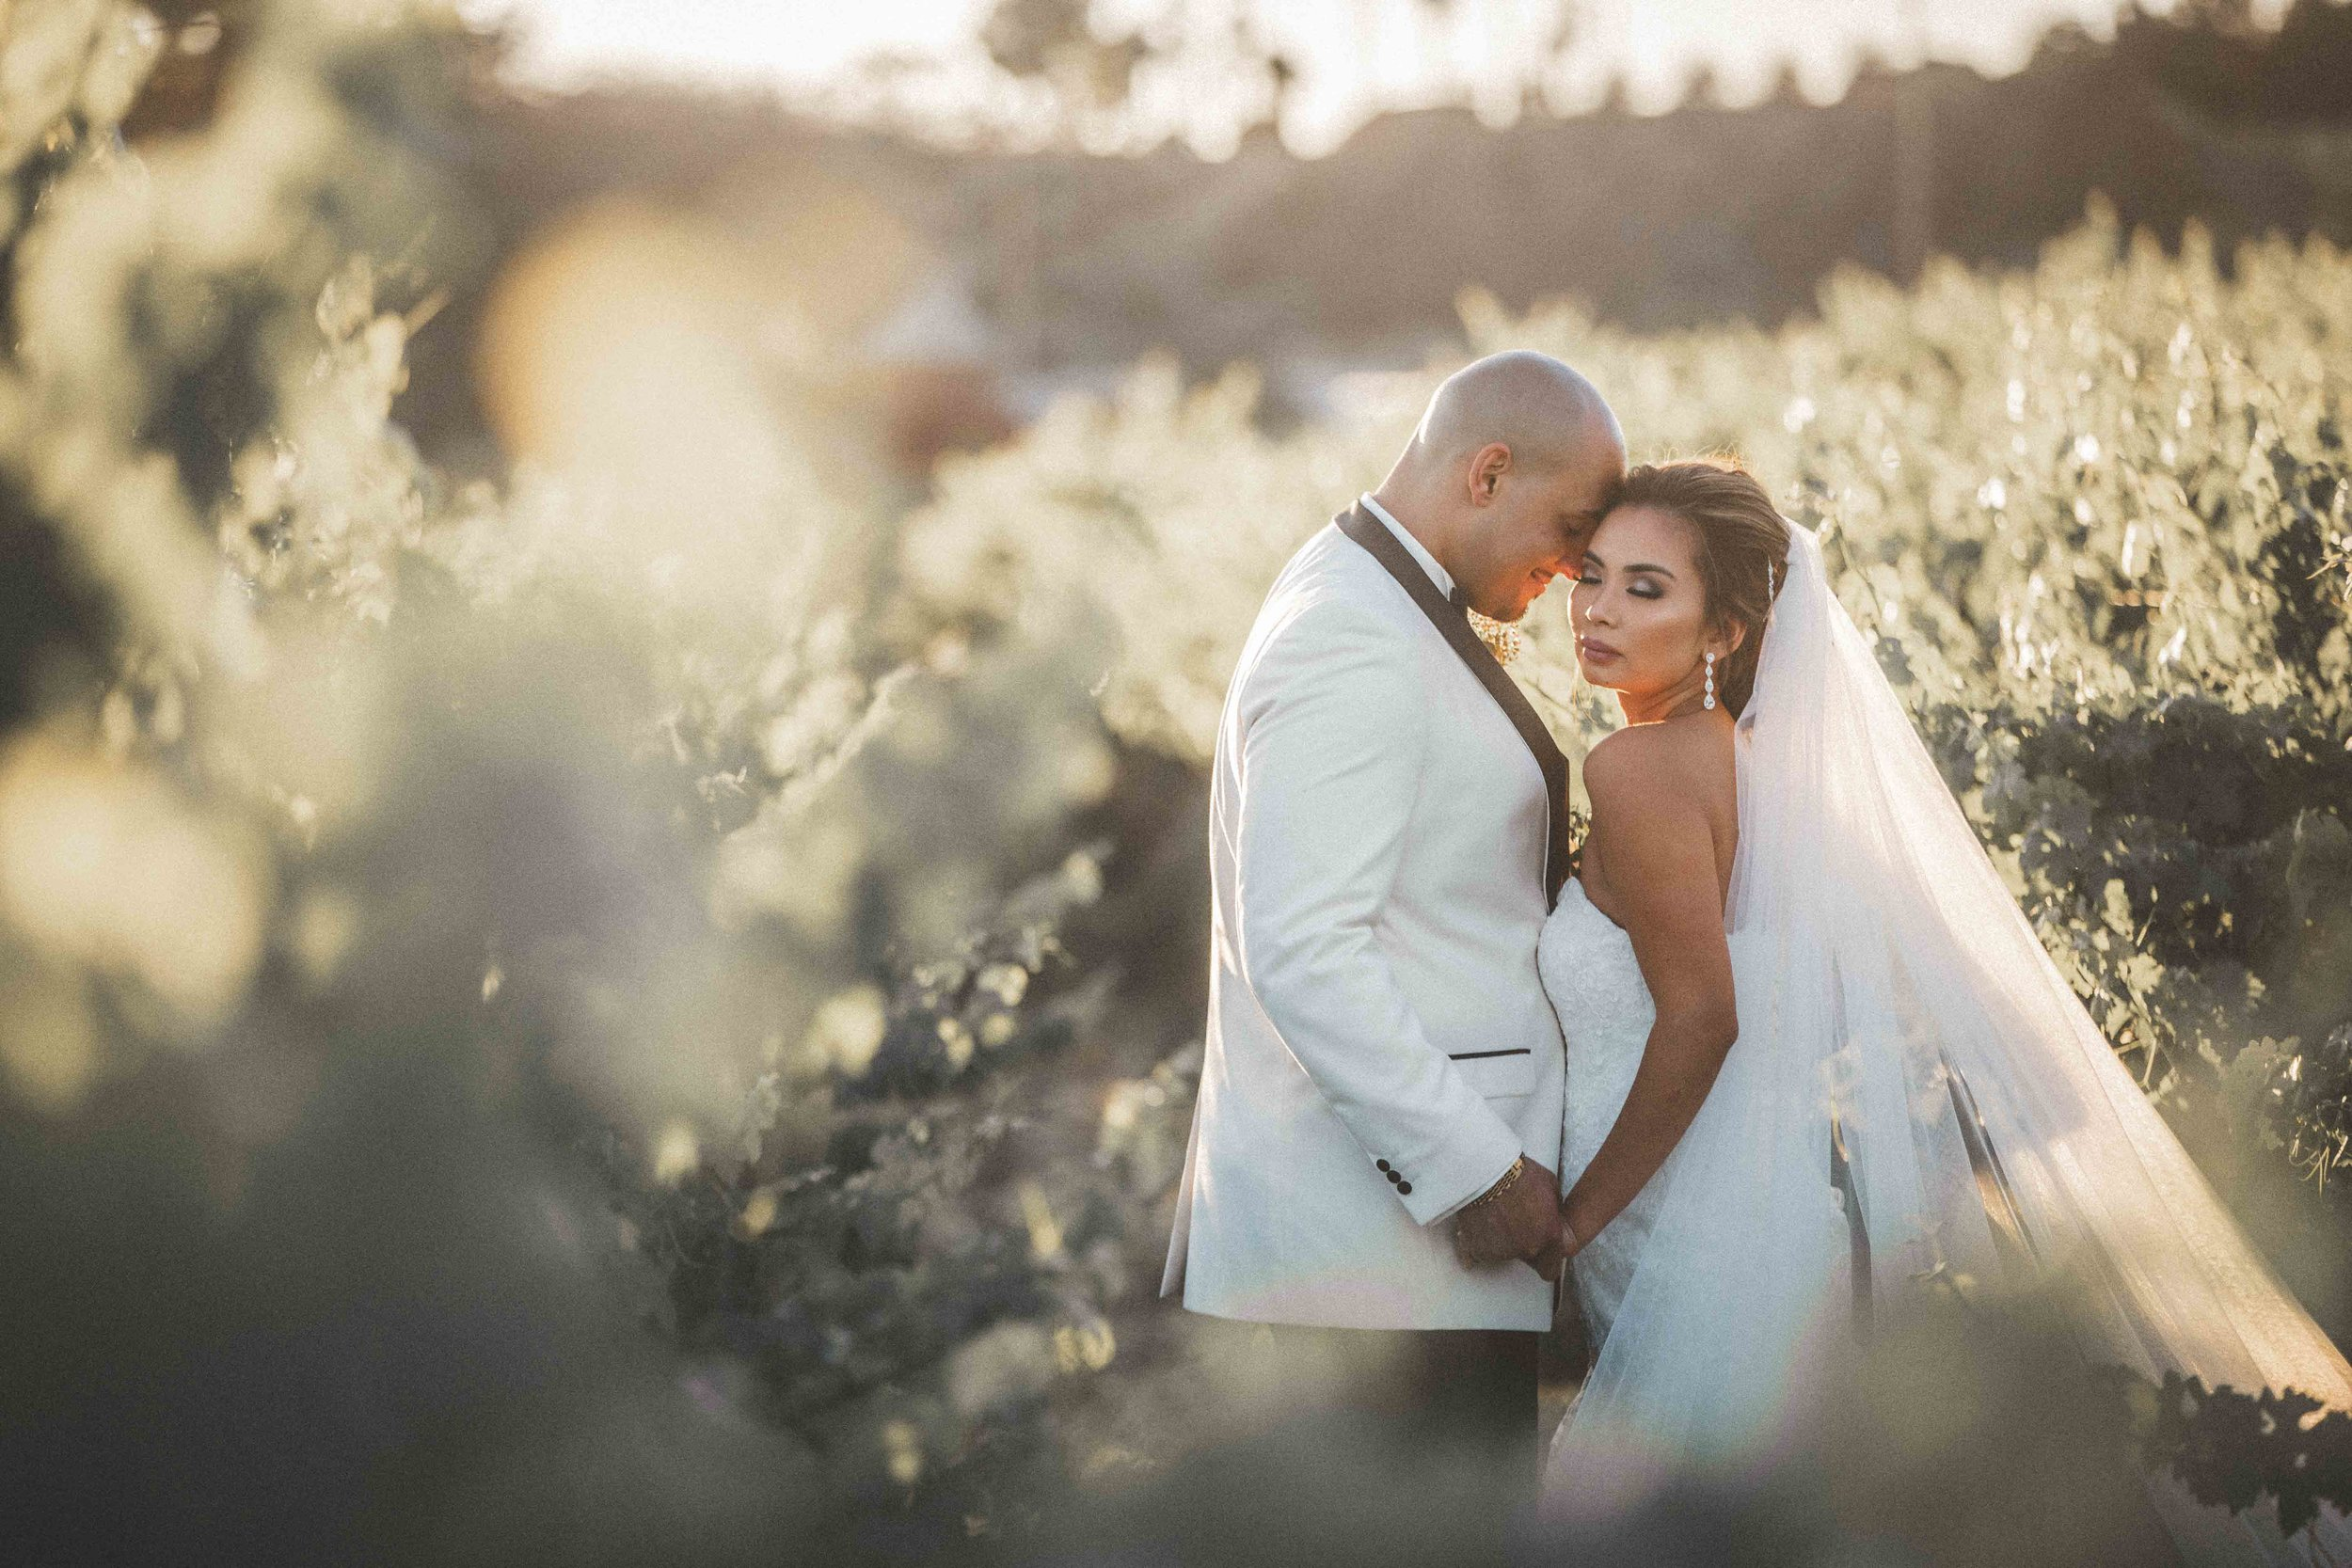 Lulan Los Angeles Wedding Photography